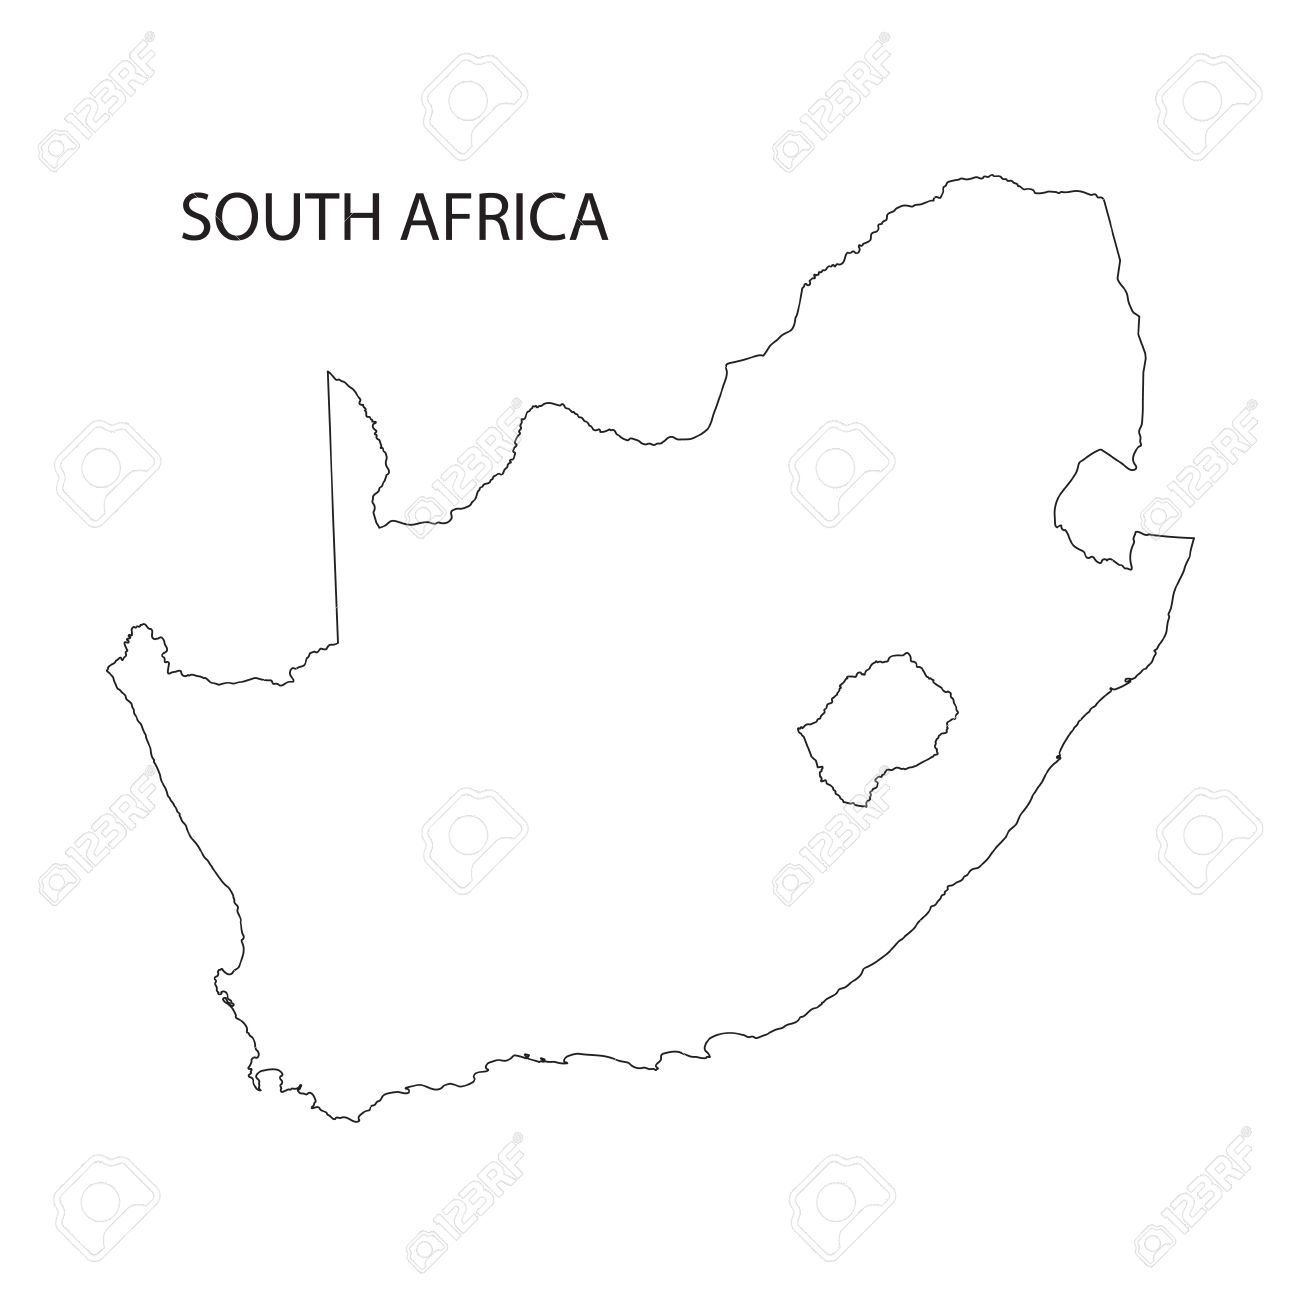 Outline Of Africa Map.Outline Of South Africa Map Royalty Free Cliparts Vectors And